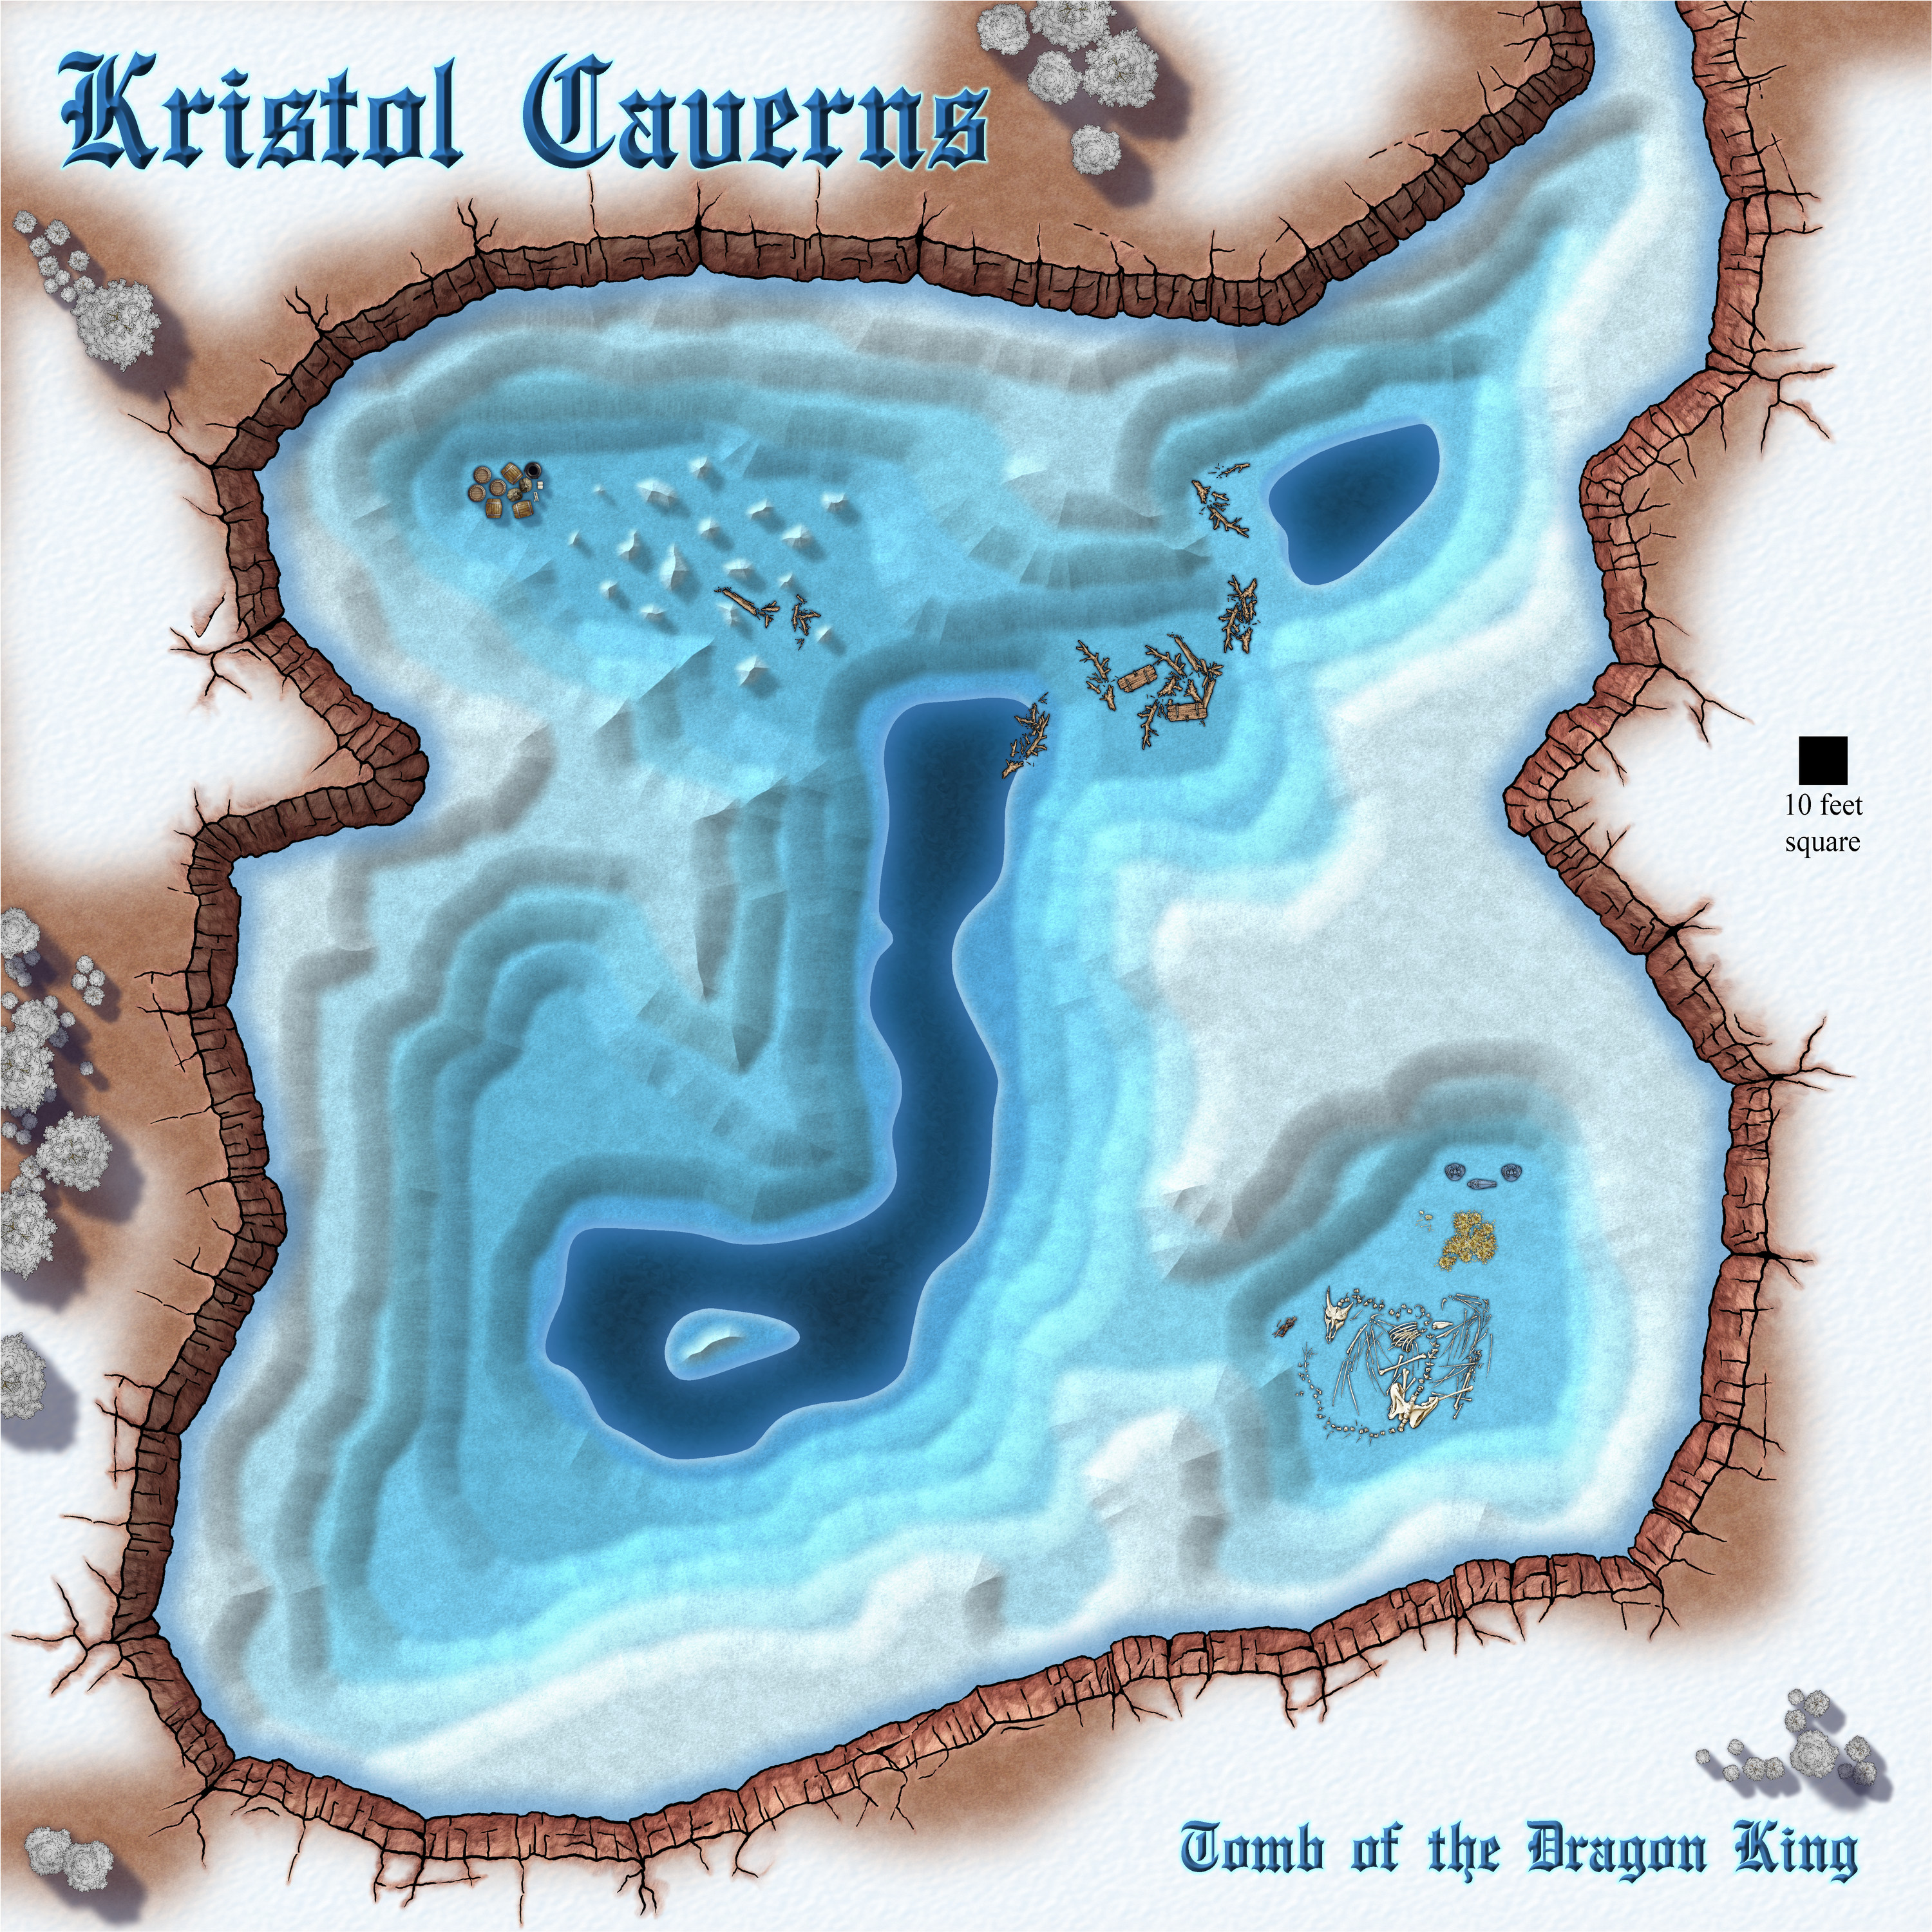 Kristol Caverns - Final.JPG